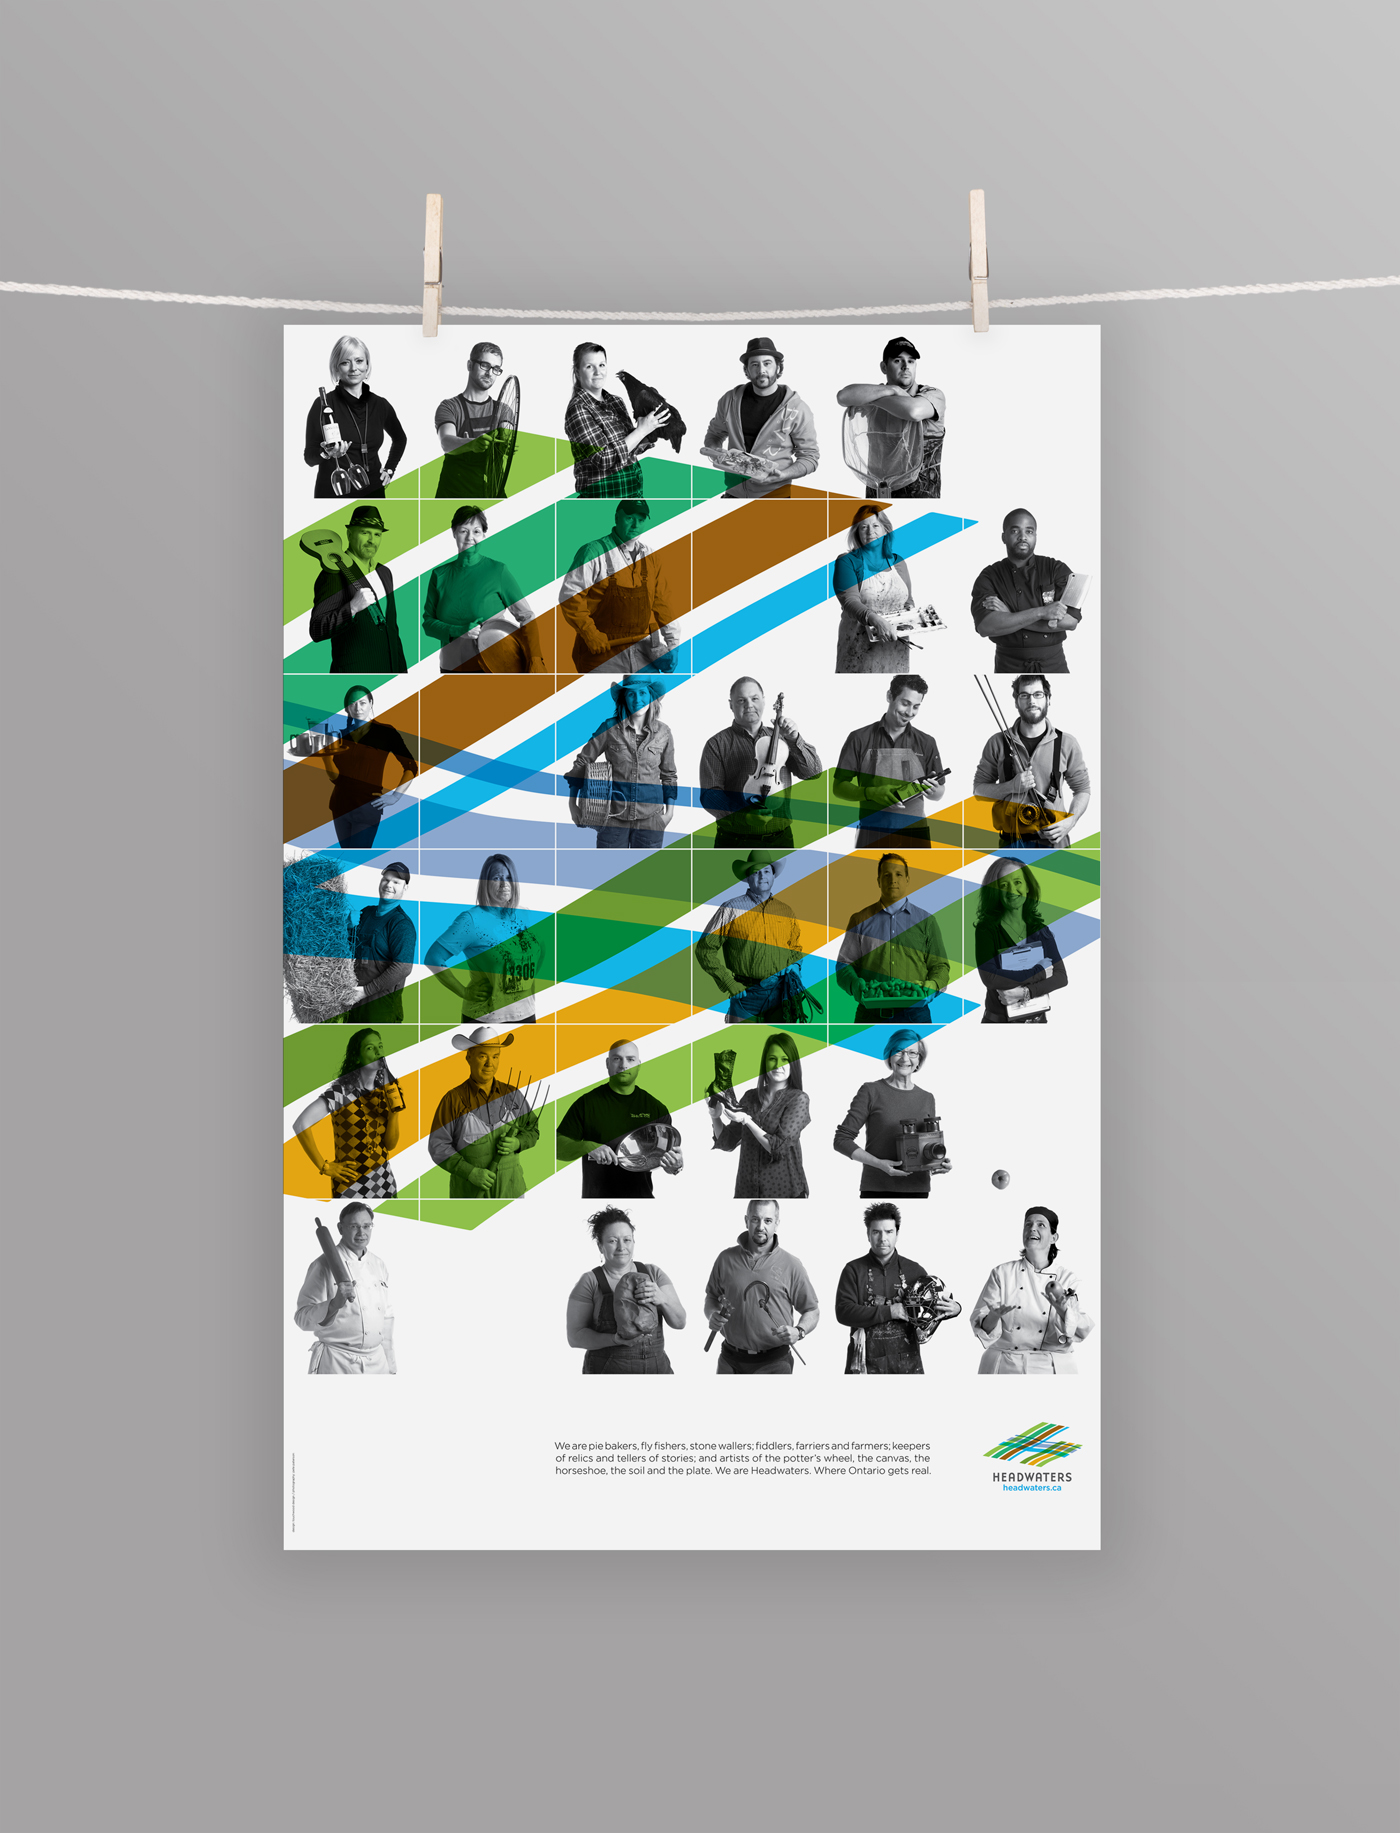 Headwaters Tourism poster featuring some of it's markers, artists and farmers. These astounding people call Erin, Caledon, Shelburne, Dufferin and Mono their home!